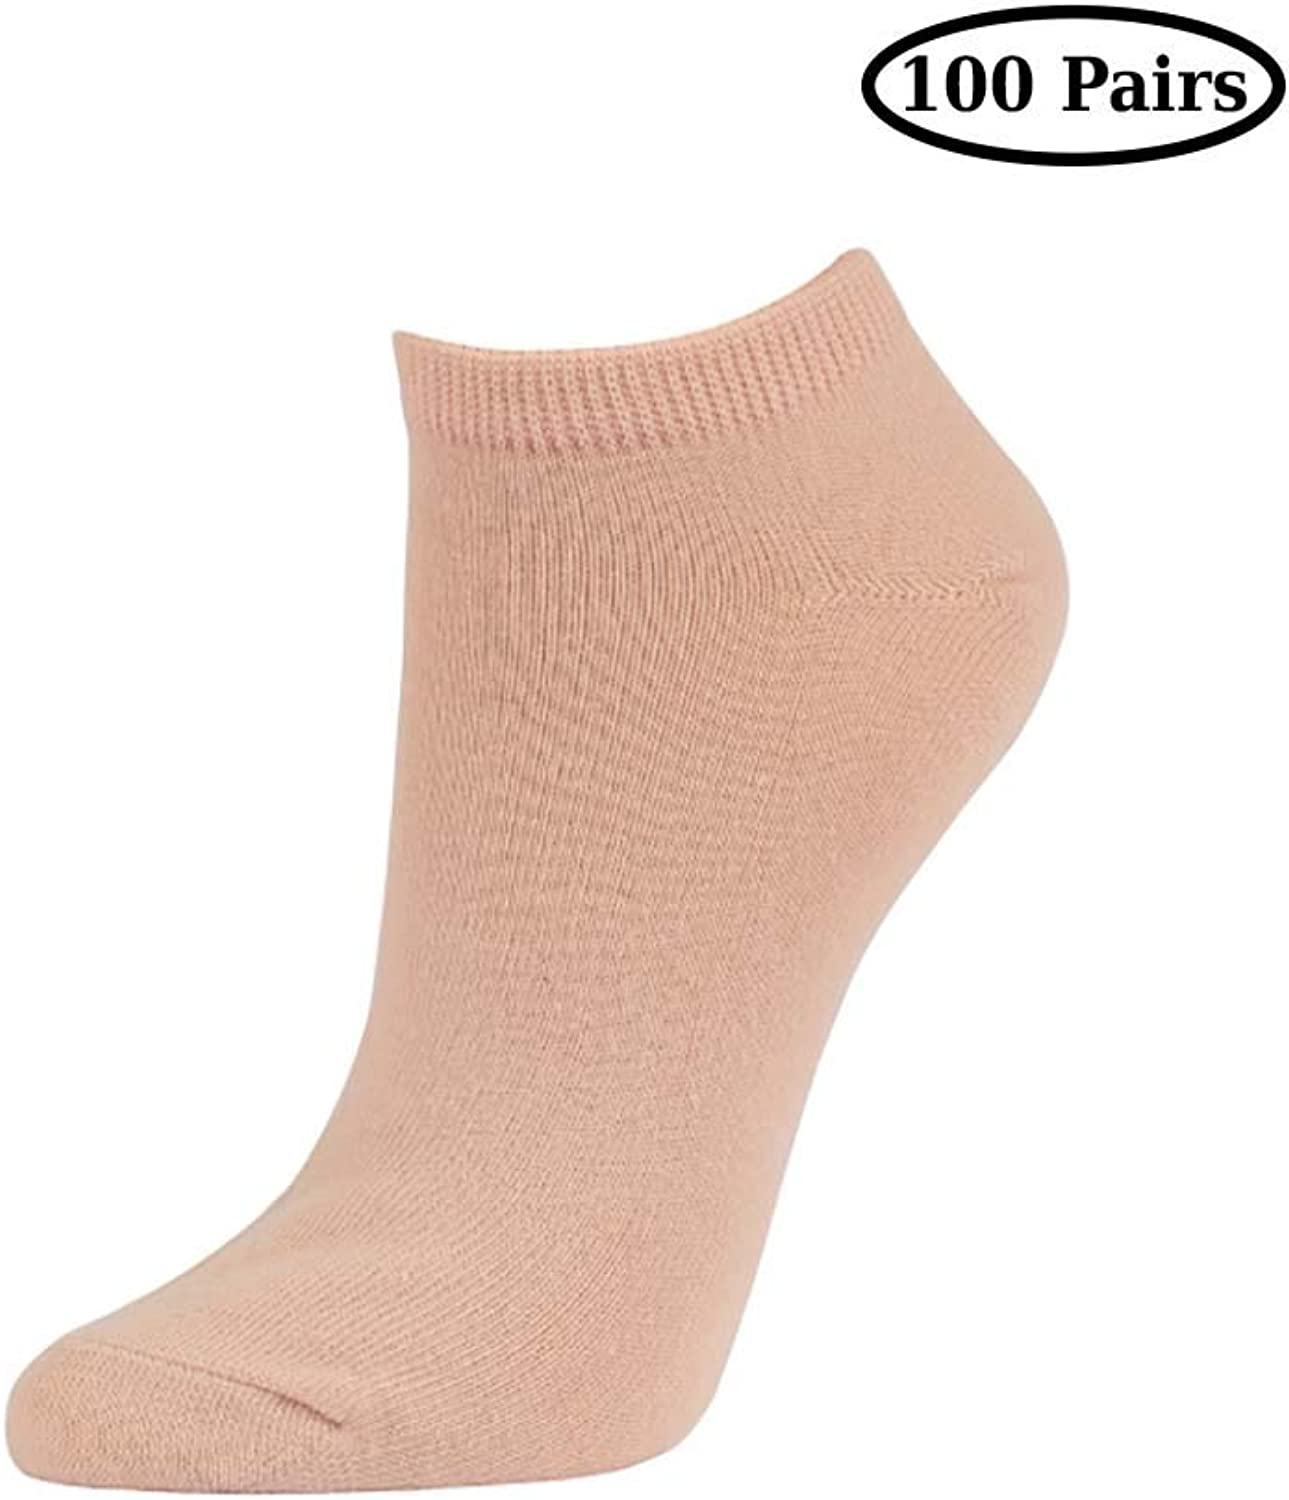 Qraftsy Soft Cotton Poly Basic No Show Socks Everyday Wear  shoes Size 69 Sock Size 911 100 Pairs